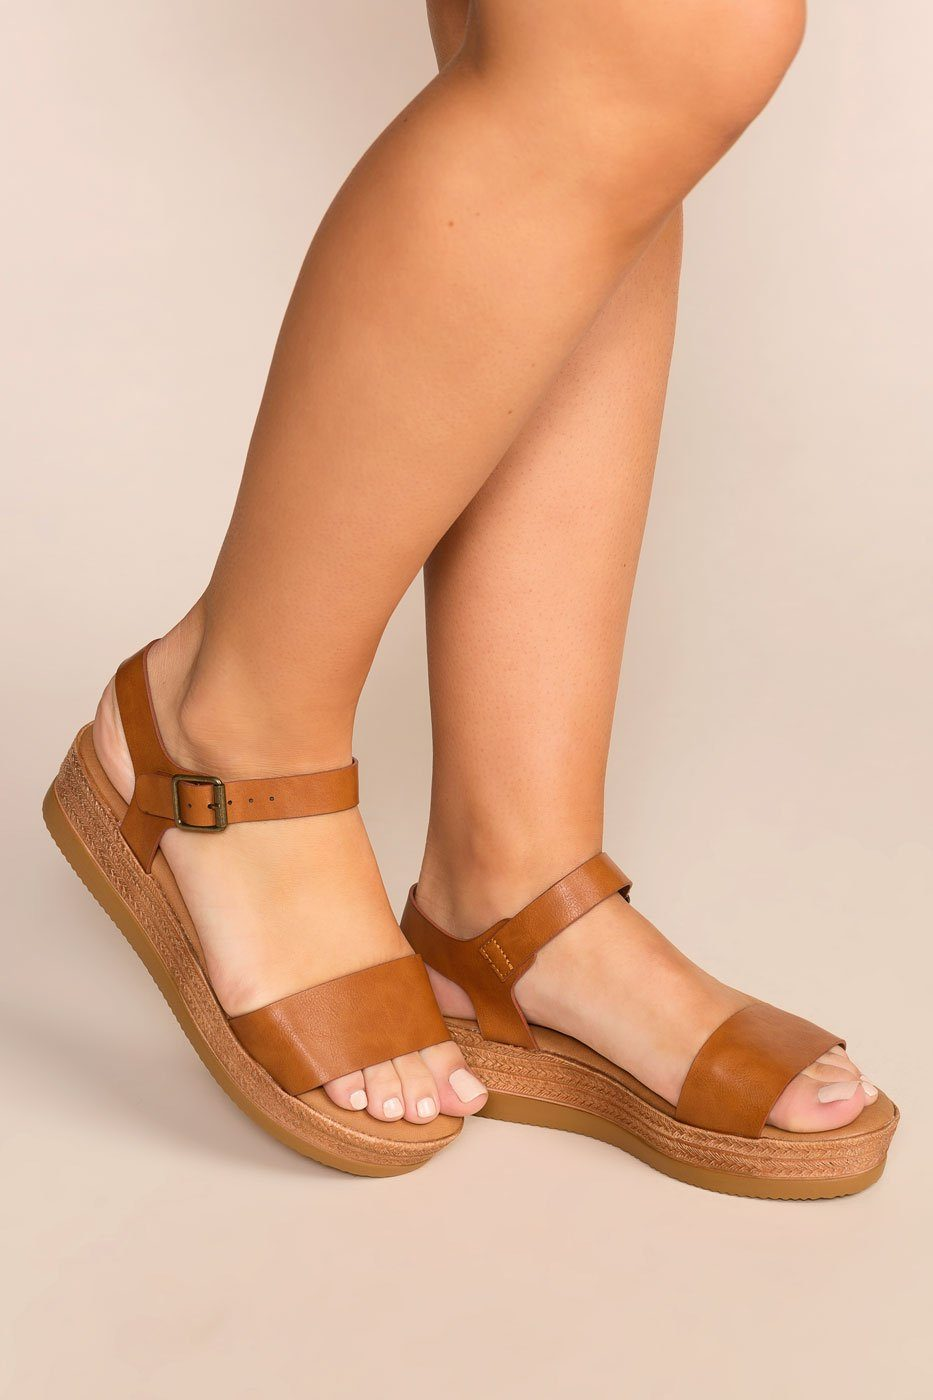 Tan Sandals Take Platform Breather A 8wOyn0vmN